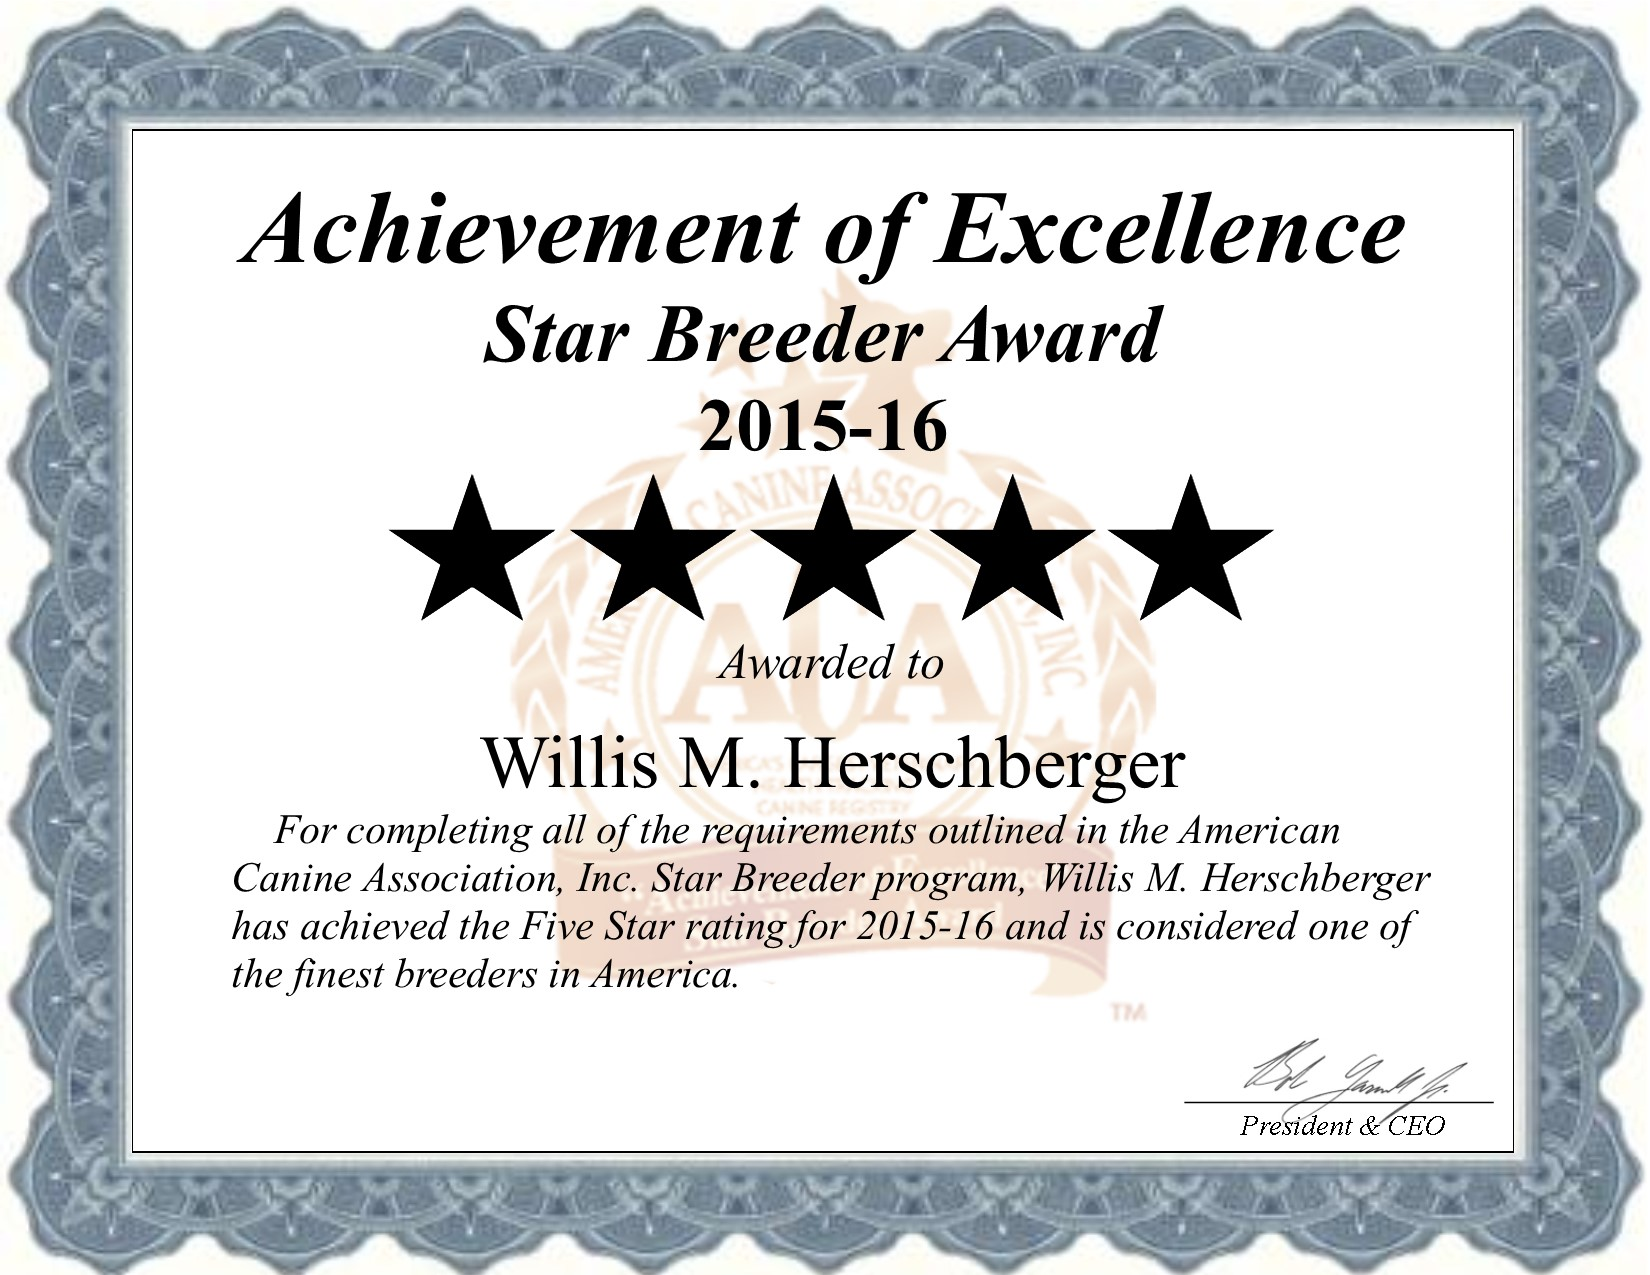 Willis, Herschberger, dog, breeder, Willis-Herschberger, dog-breeder, kennel, Herschberger Kennels, Kennel, starbreeder, star breeder, 5 star, USDA, OH, Fresno, Ohio, puppymill, mill, puppy-mill, dog law,dog, puppy, puppies, ACA, Willis Herschberger Ohio